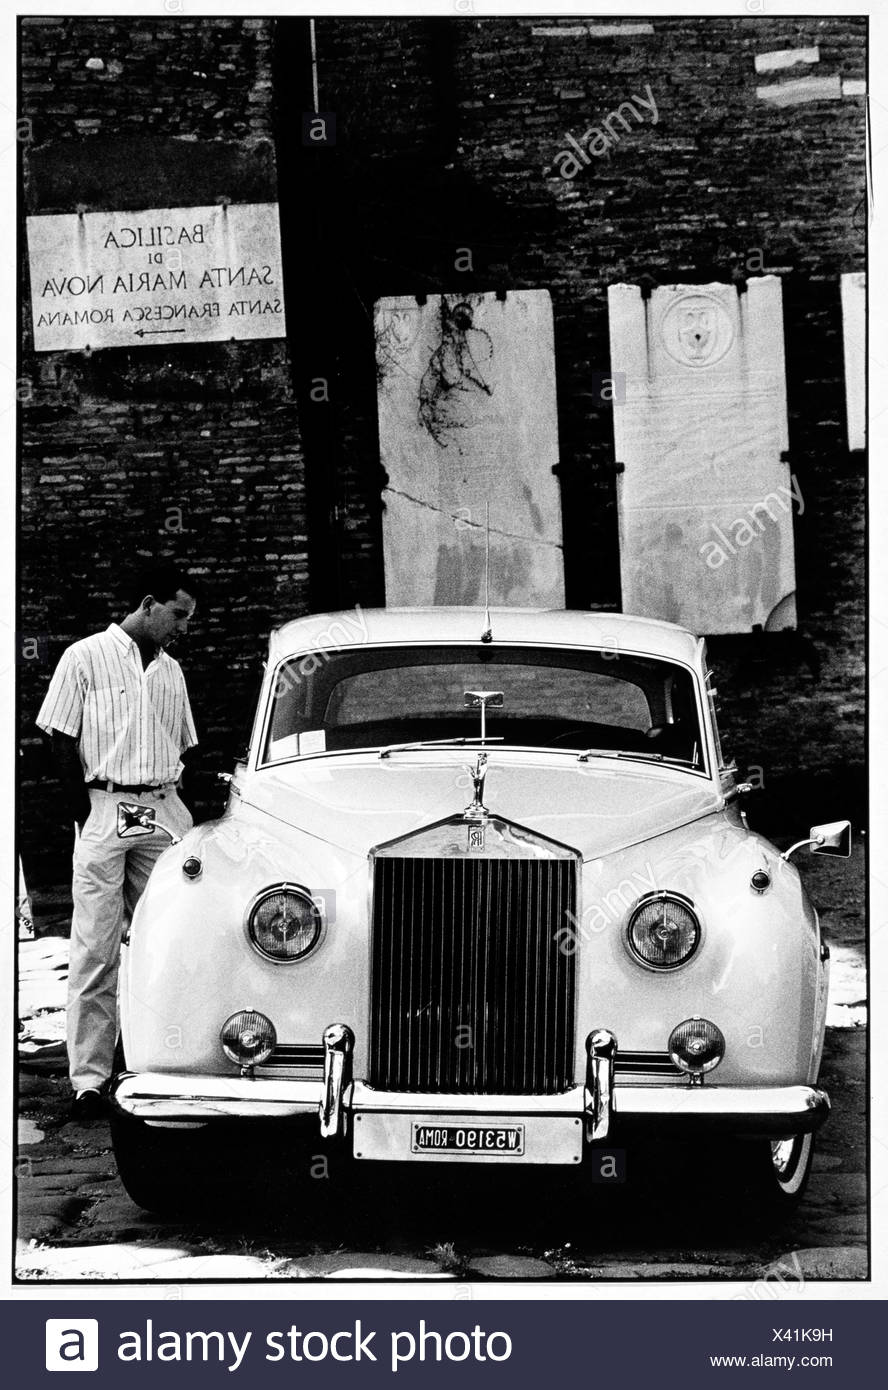 A man looks at a Rolls Royce parked in Rome. - Stock Image